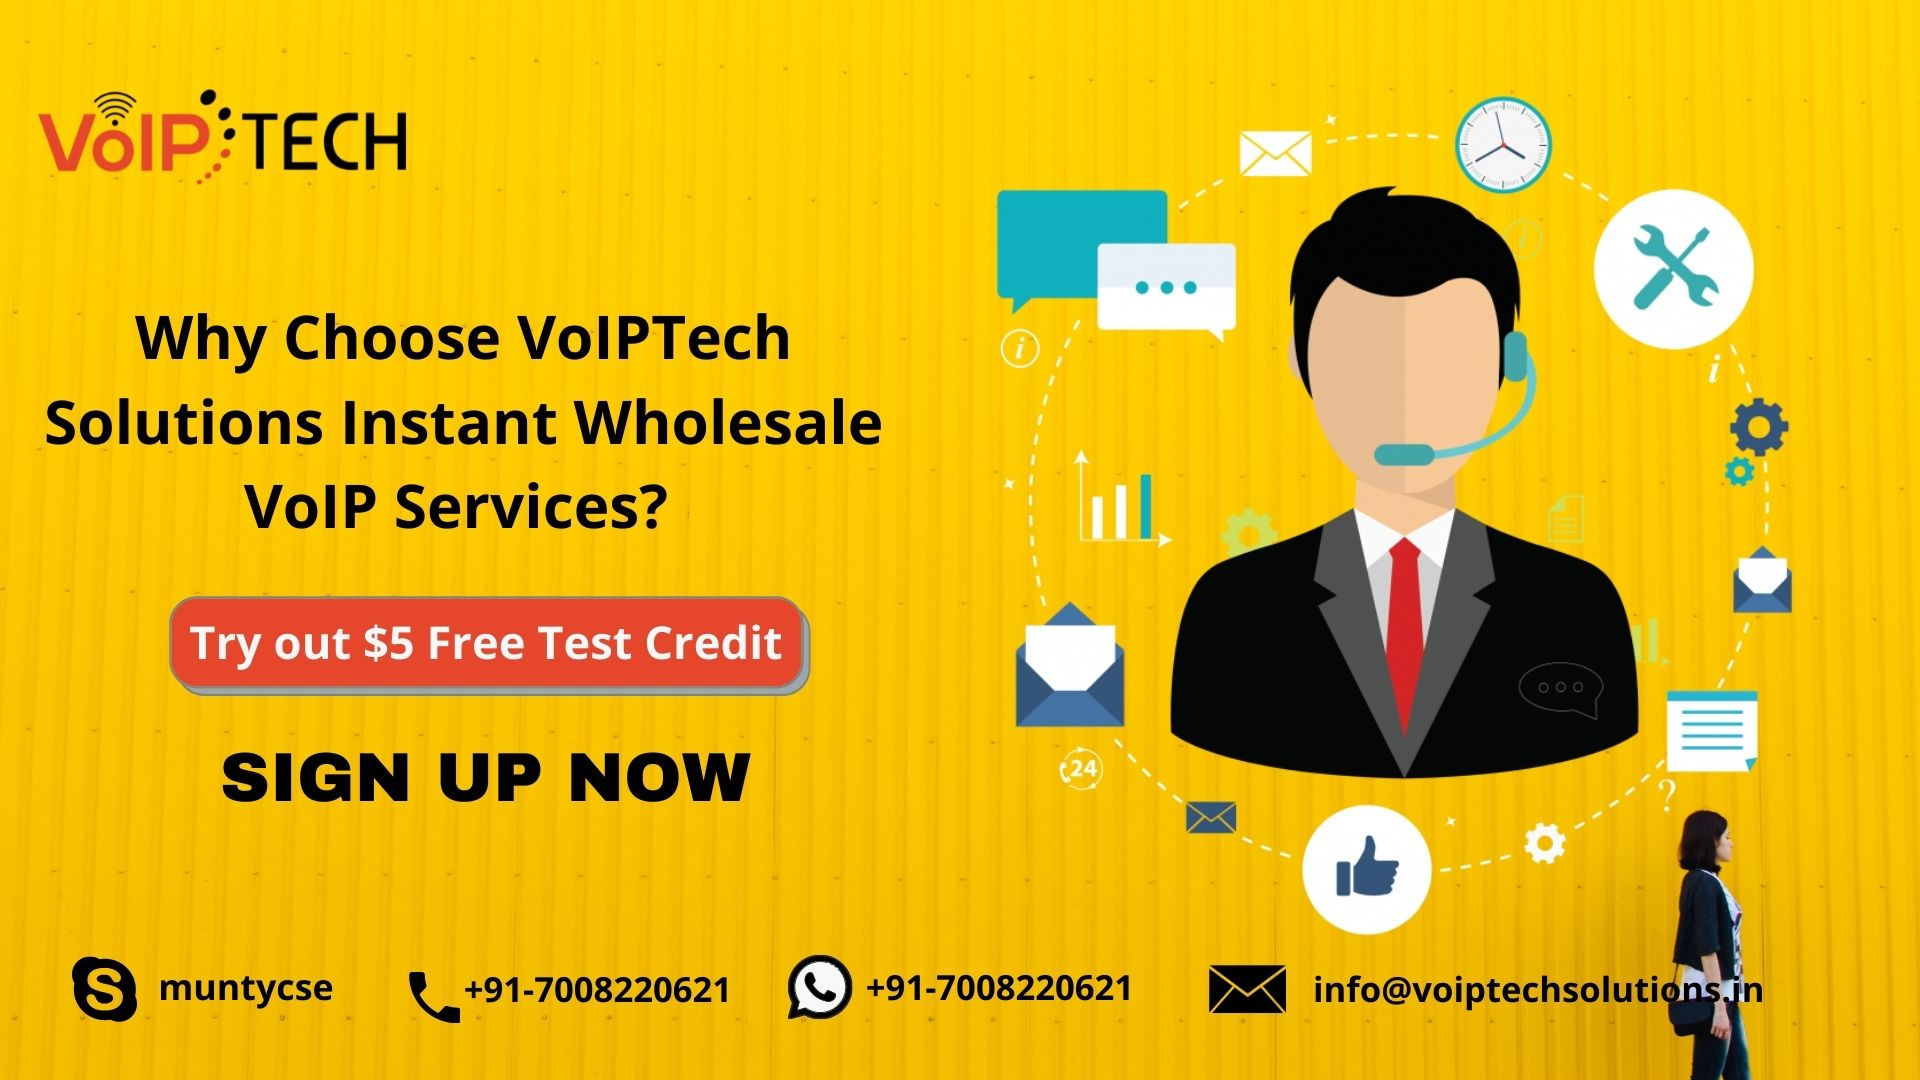 Instant VoIP Wholesale Service, Why Choose VoIPTech Solutions Instant Wholesale VoIP Services?, A-Z VoIP Termination Provider, Exploring The VoIP Technology from Business Point of view. Pros & Cons! ,VoIP Business, VoIP tech solutions, vici dialer, virtual number, Voip Providers, voip services in india, best sip provider, business voip providers, VoIP Phone Numbers, voip minutes provider, top voip providers, voip minutes, International VoIP Provider